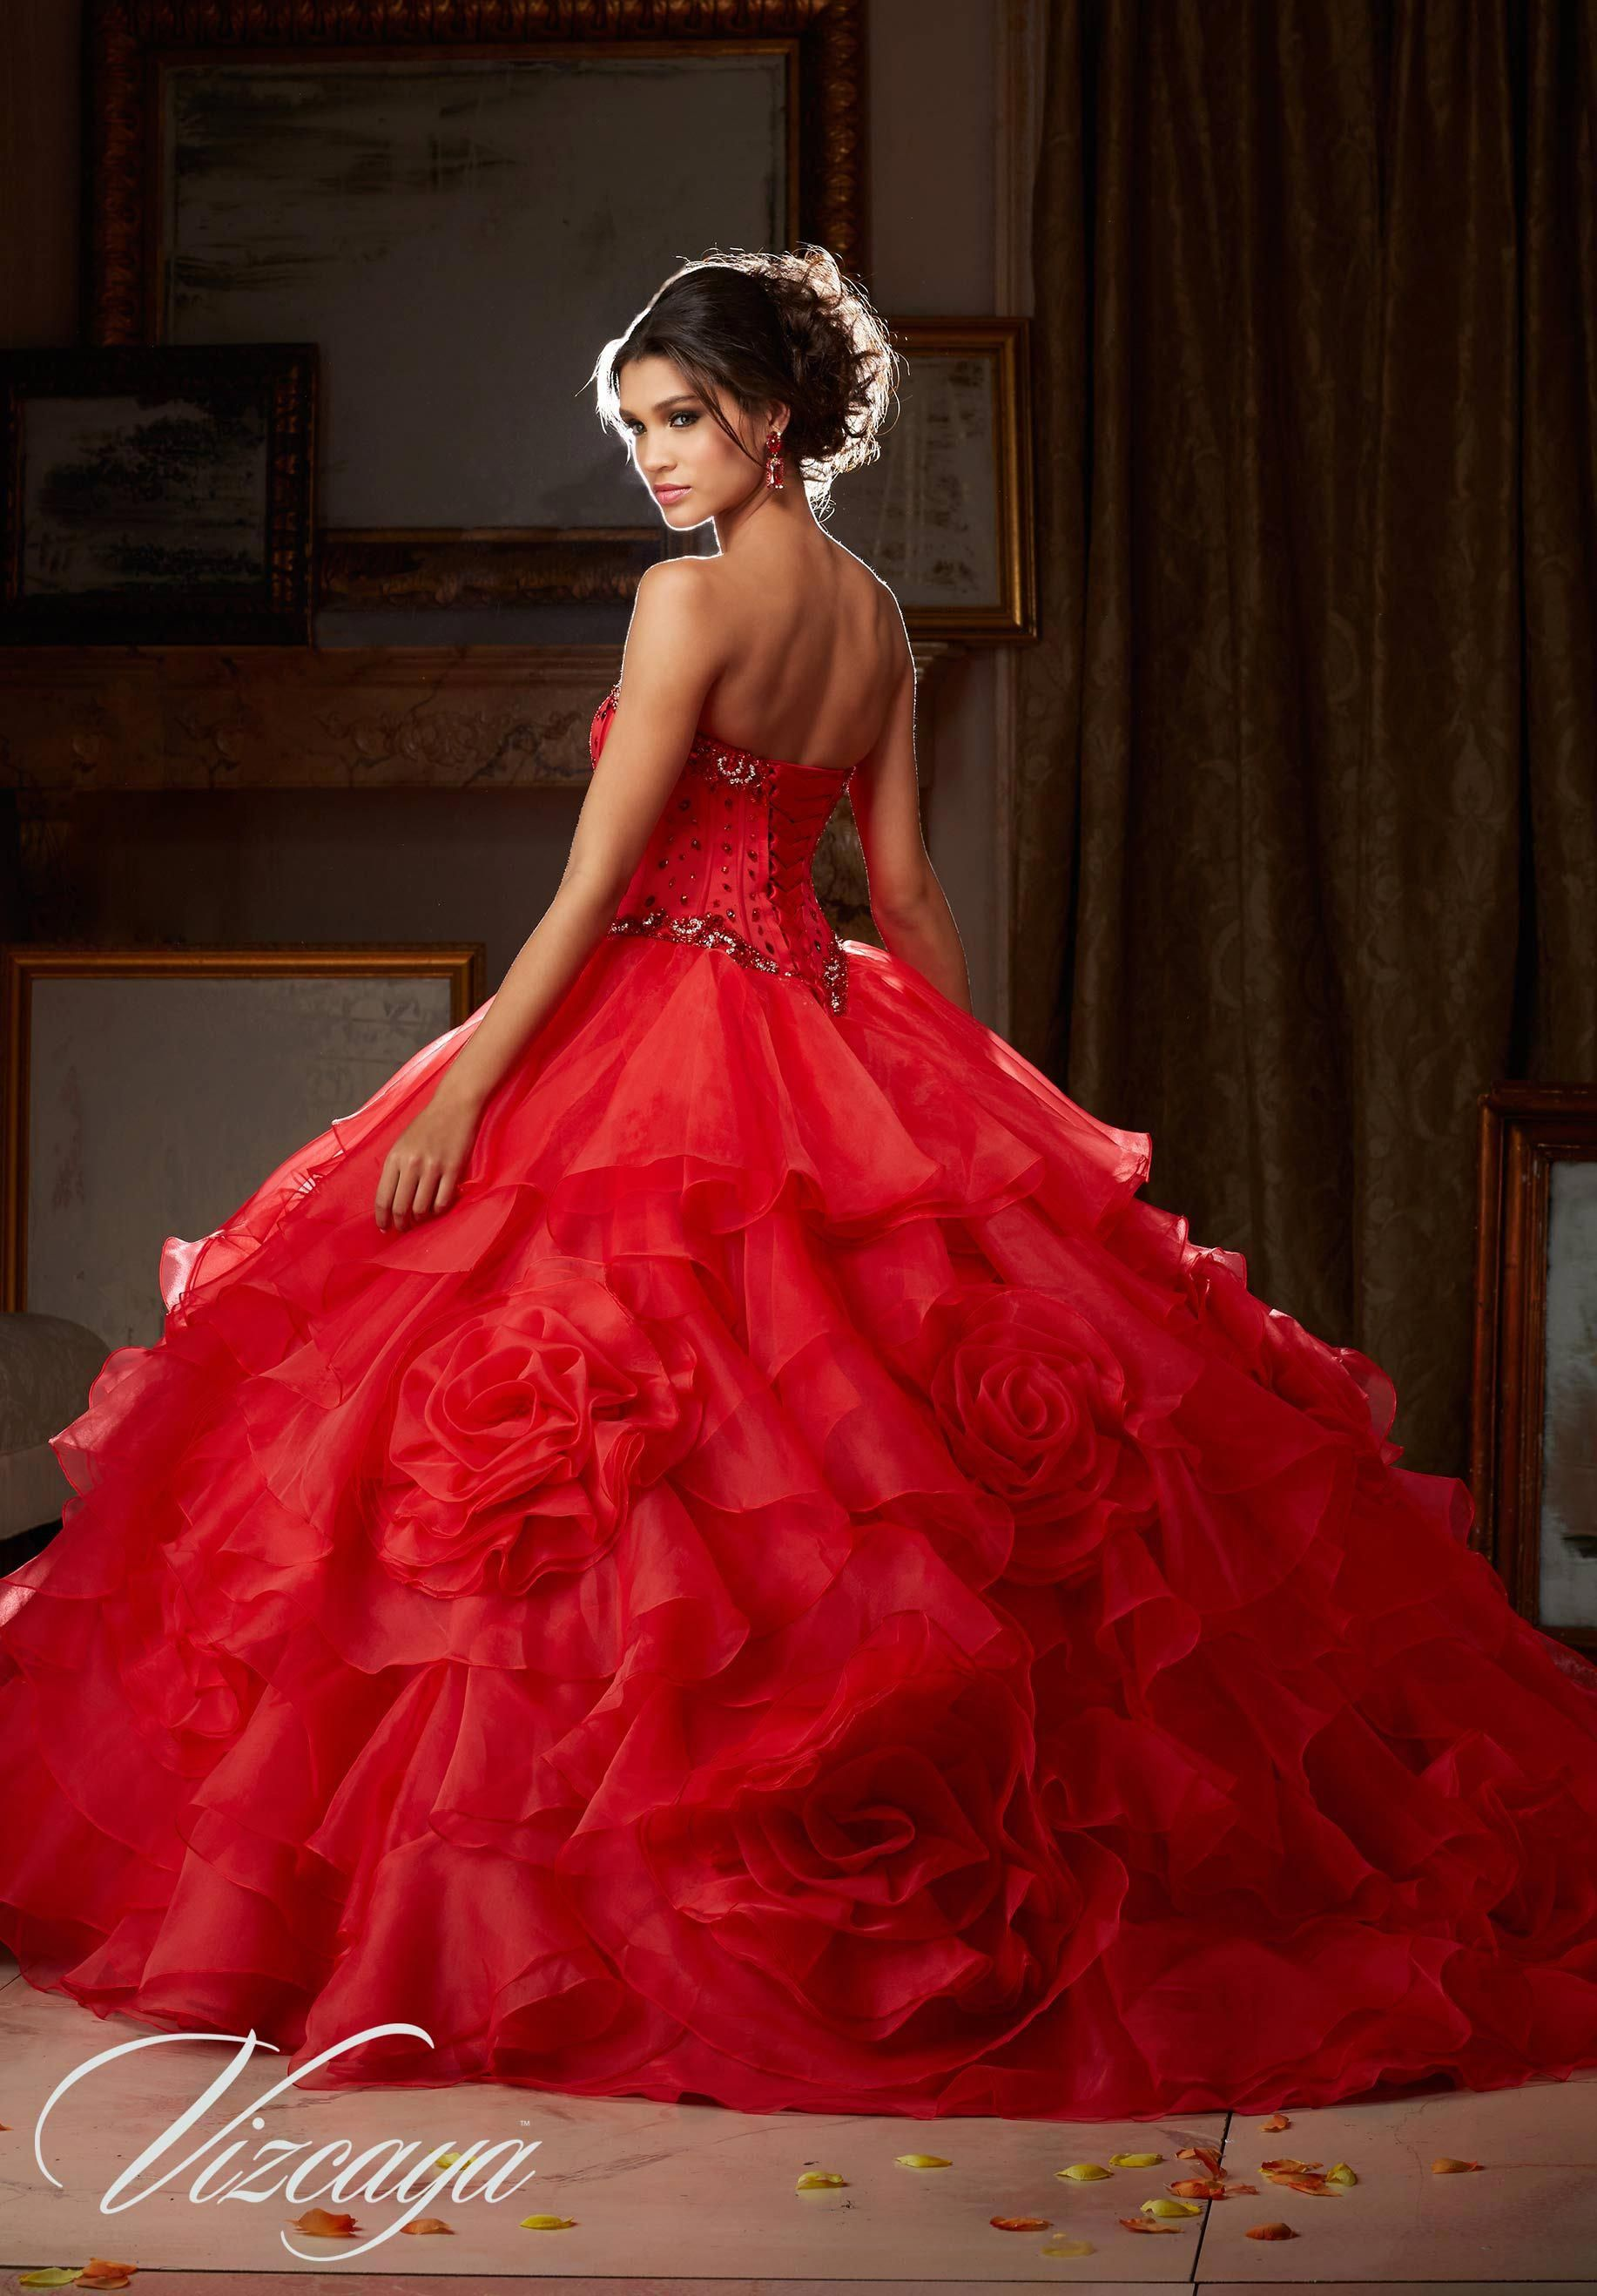 63d1e40c2 Quinceanera Dresses by Morilee designed by Madeline Gardner. Organza  Quinceañera Dress with Corset Style Beaded Satin Bodice.   prettyquinceaneradresses